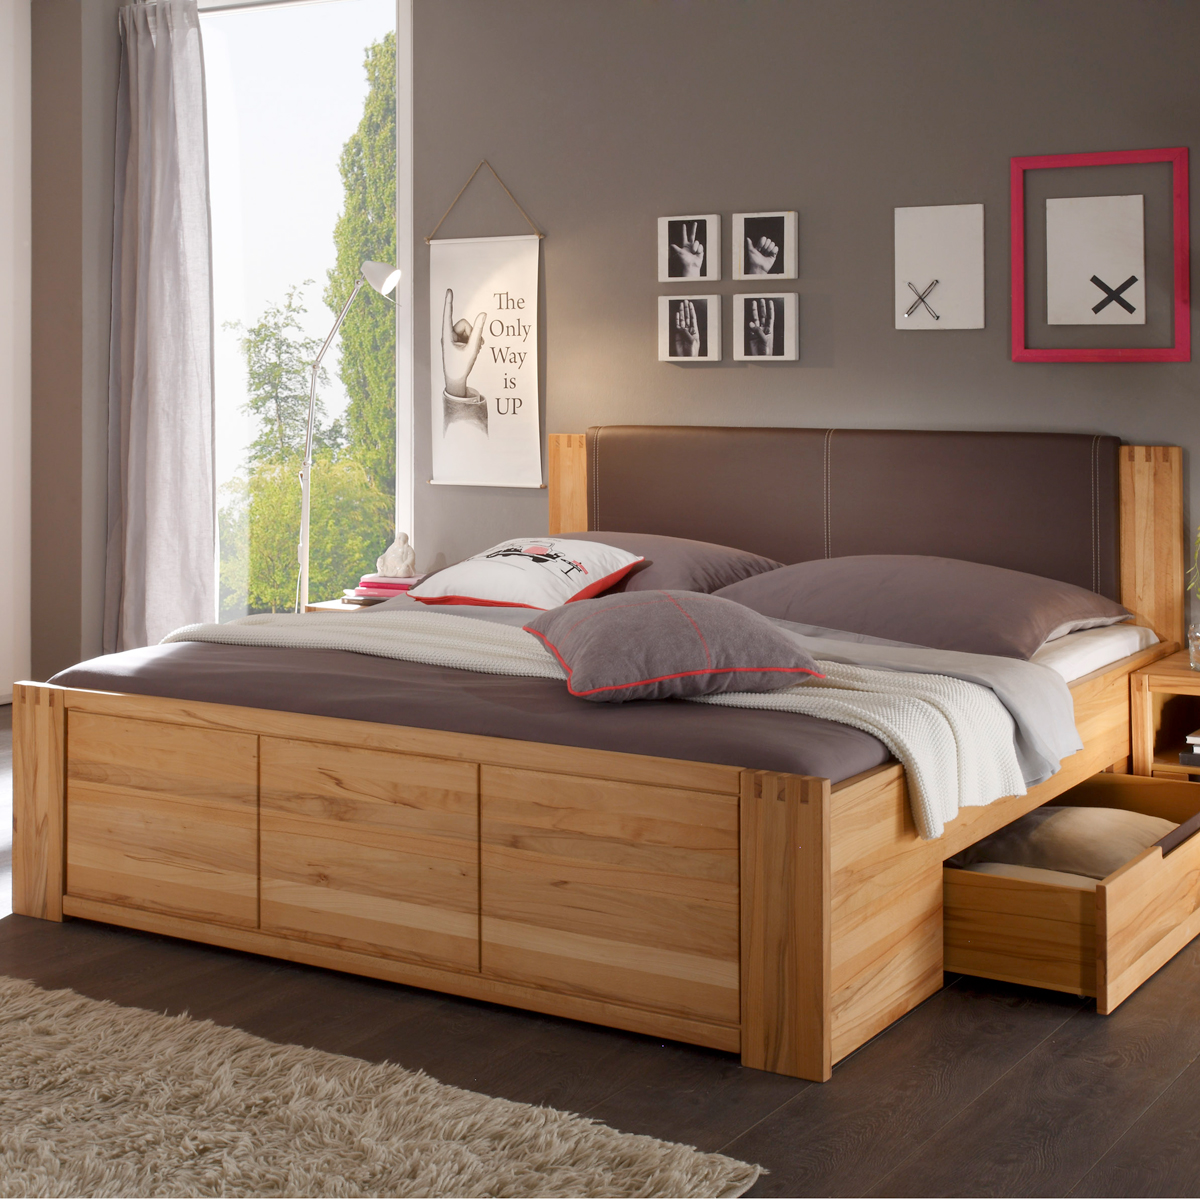 bett colorado schlafzimmerbett doppelbett kernbuche. Black Bedroom Furniture Sets. Home Design Ideas